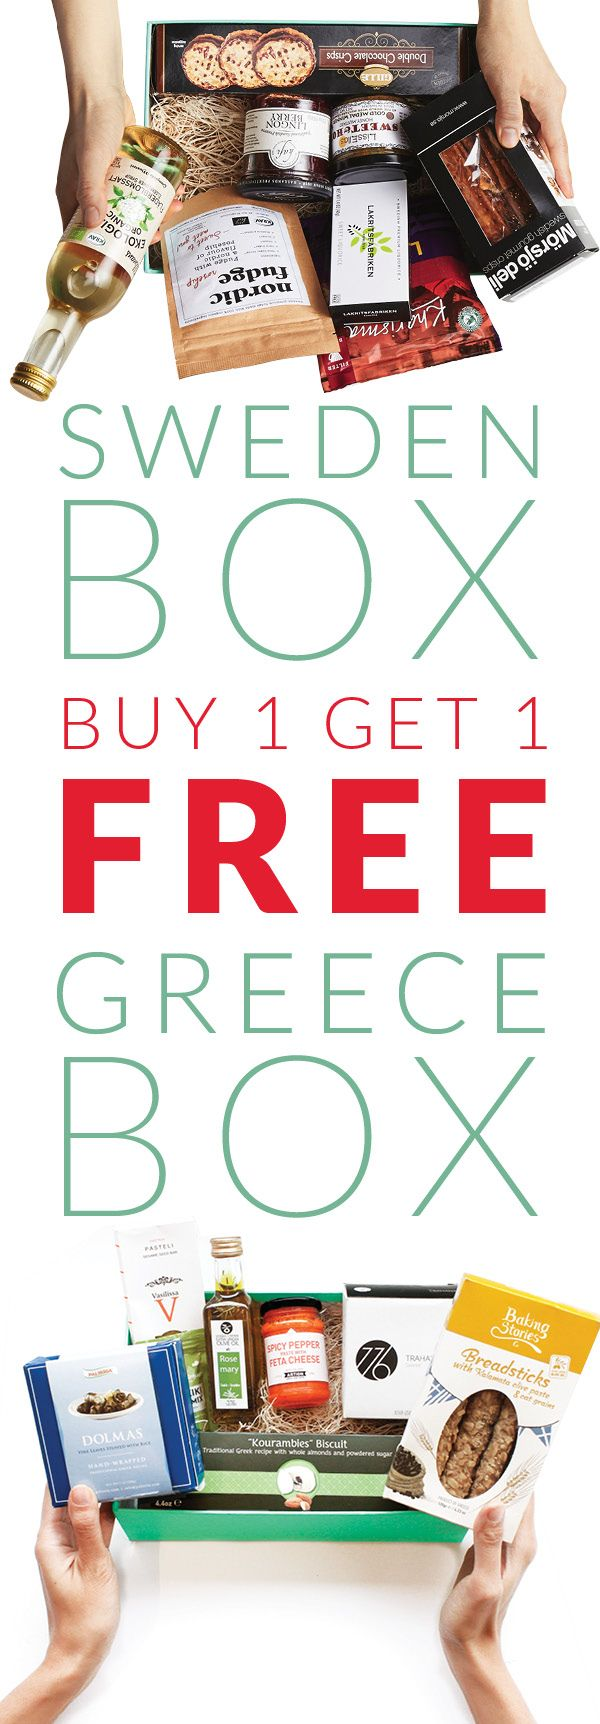 Looking to improve your cooking this year? Discover new foods and ingredients from around the world! This month, start your journey with gourmet and artisanal foods from Greece! http://shoestory.club